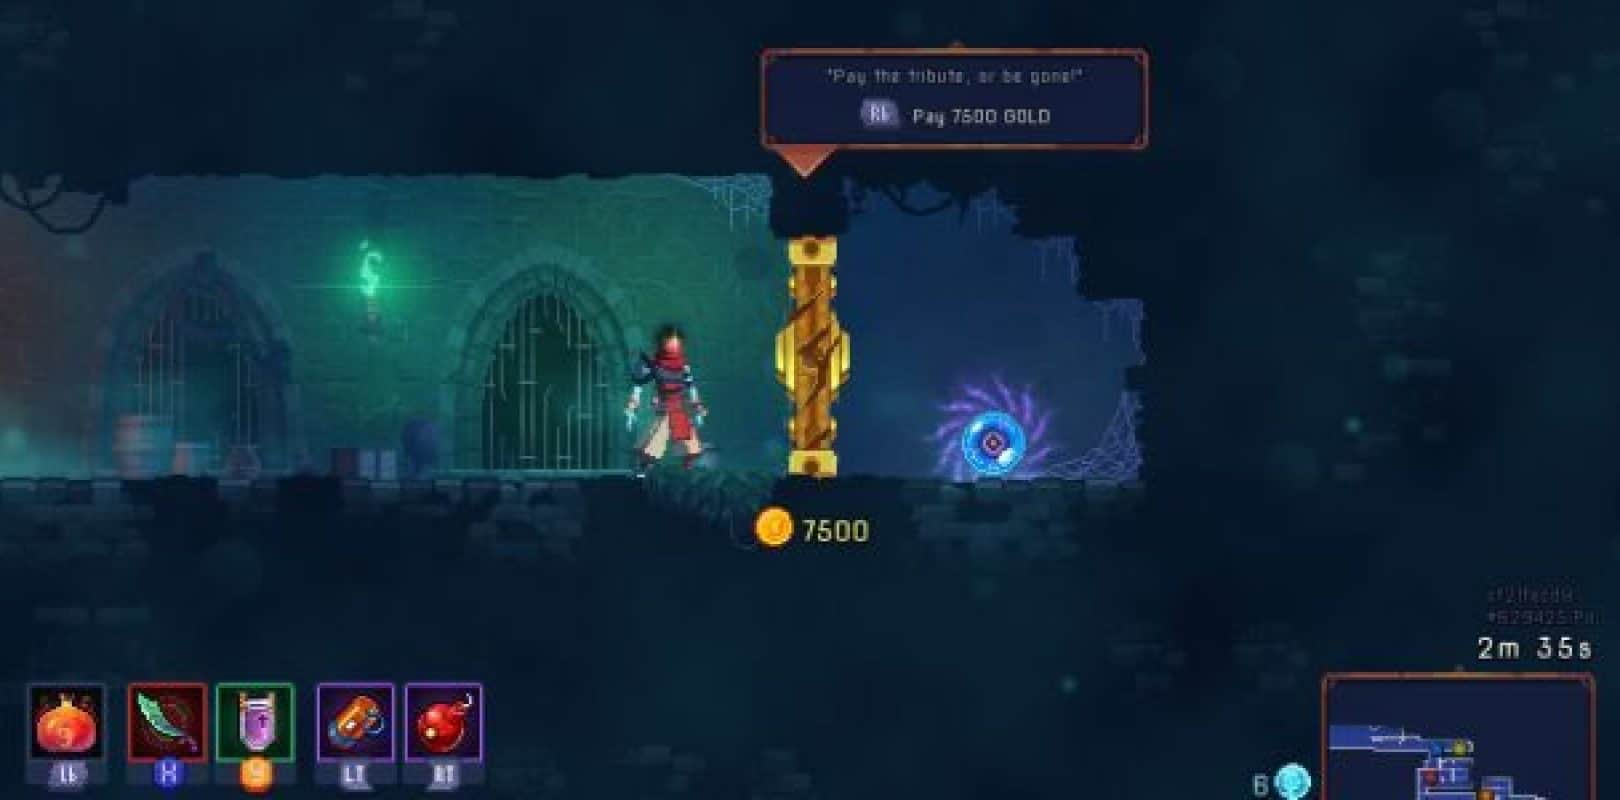 Dead Cells – 1 0 2 Patch Notes - All Patch Notes